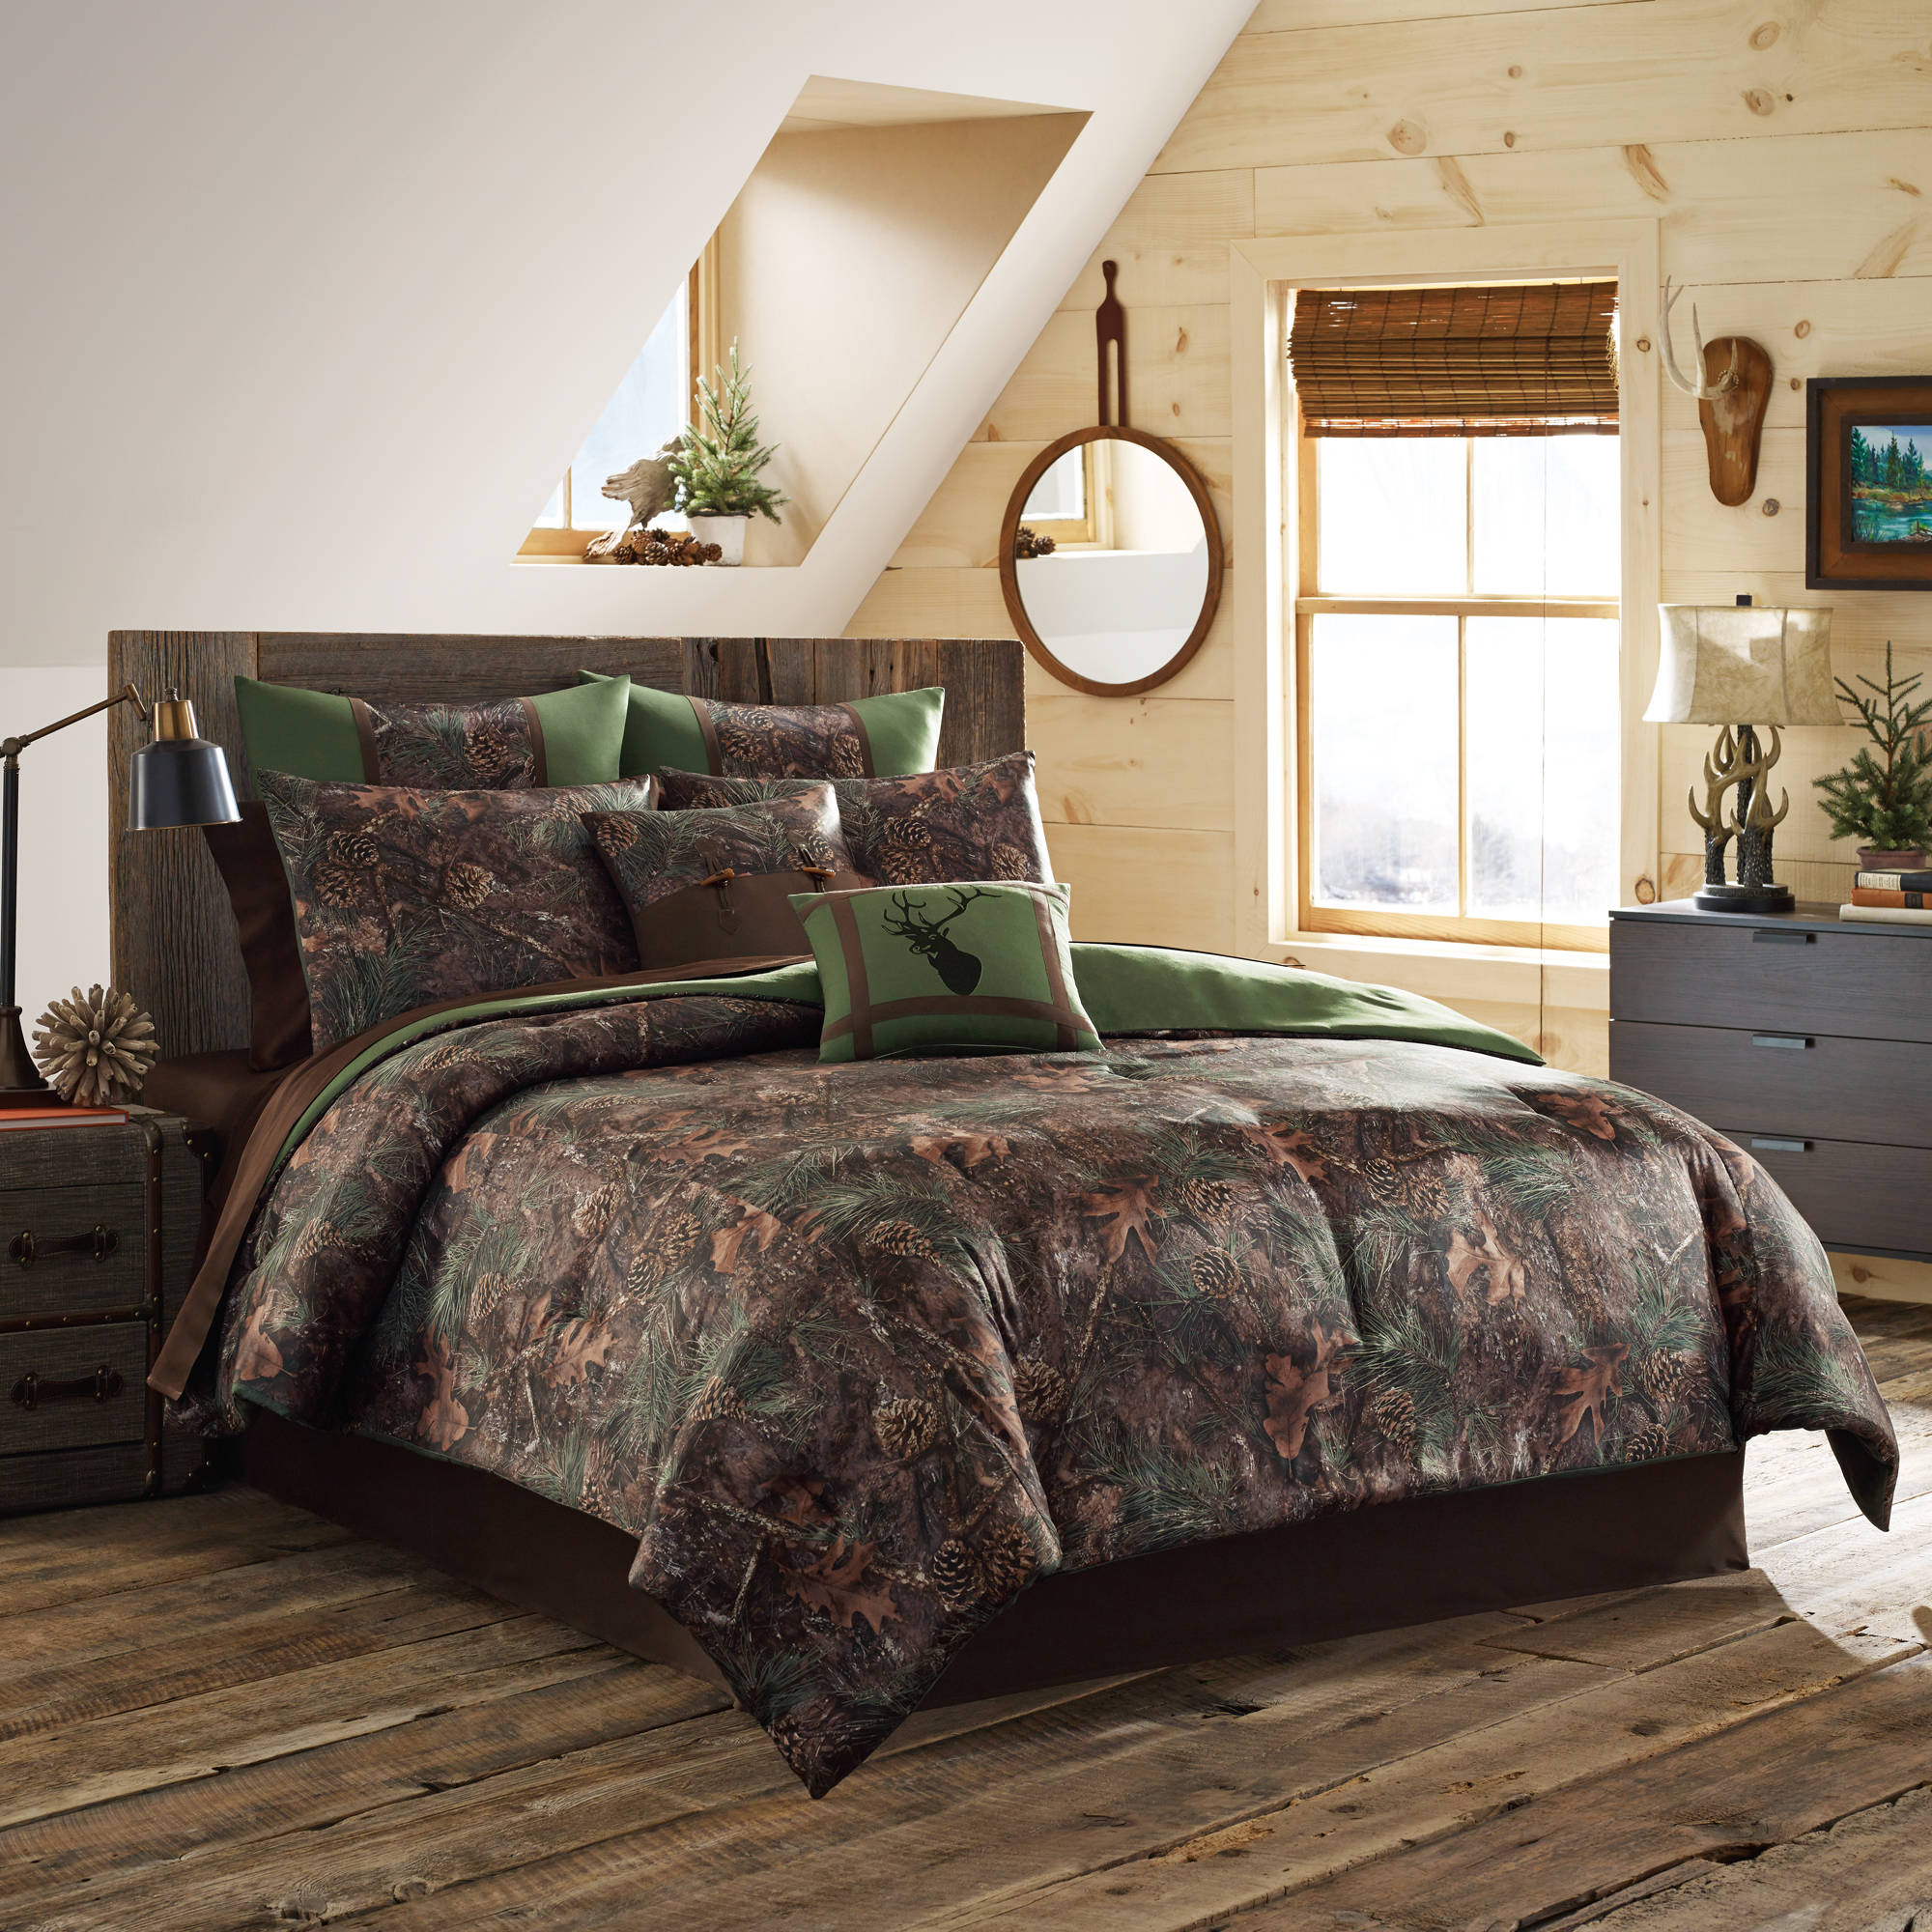 ap trading bed piece pcs realtree bedding set camo crib